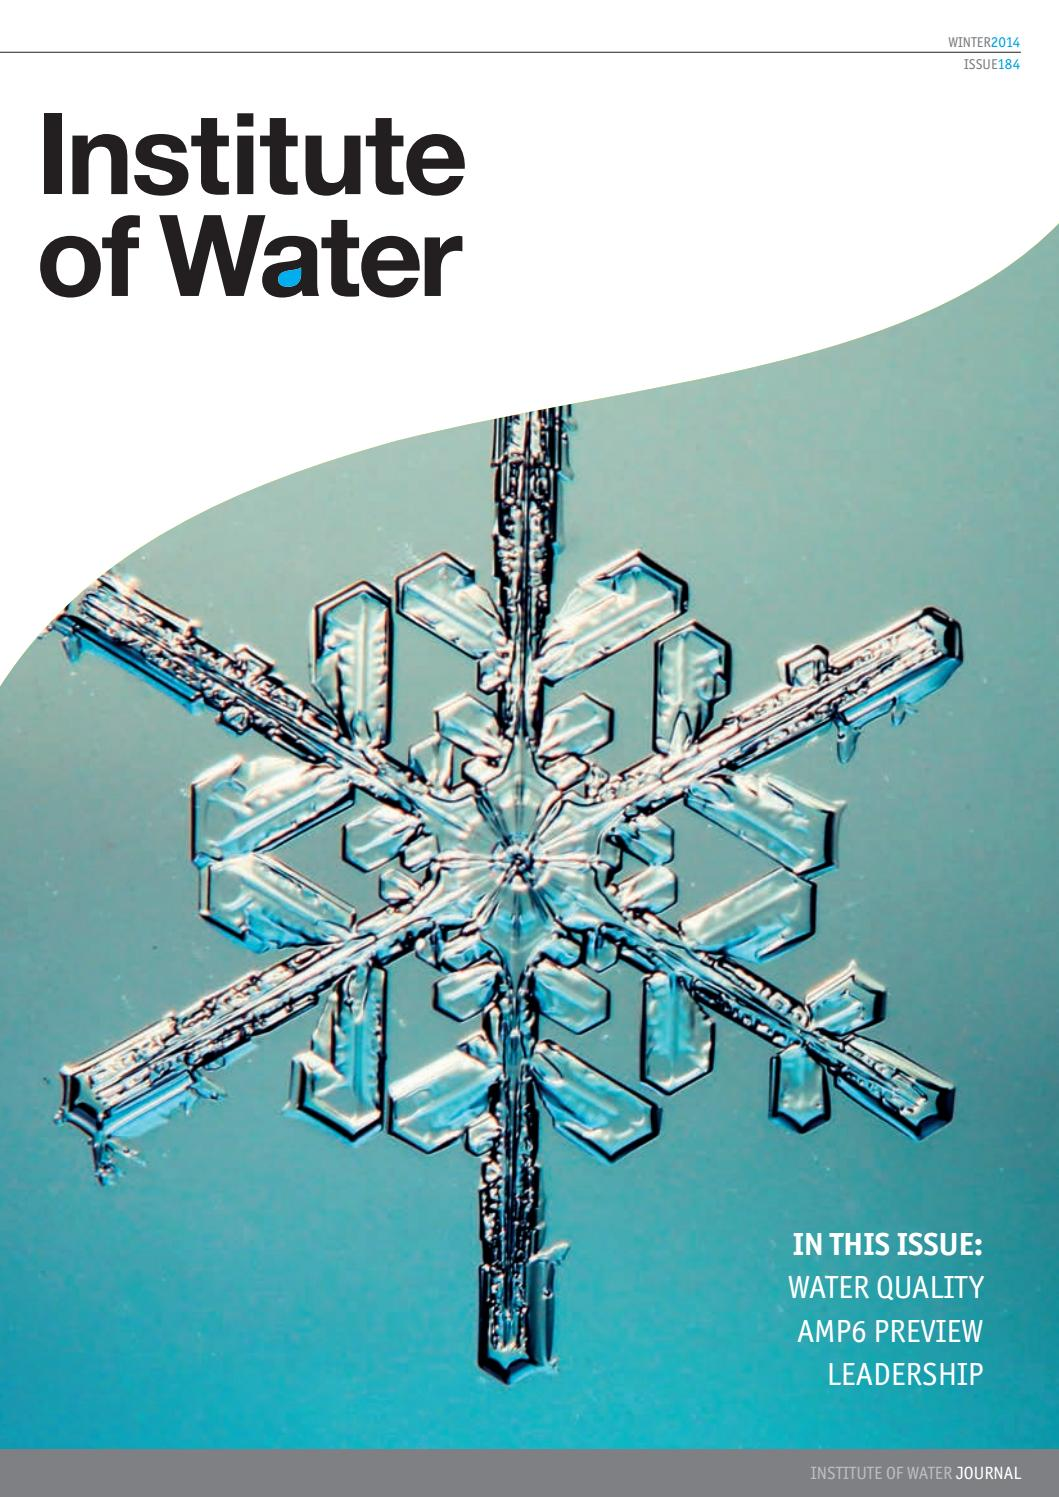 Institute of Water Magazine - Winter Edition 2014 by Institute of ...